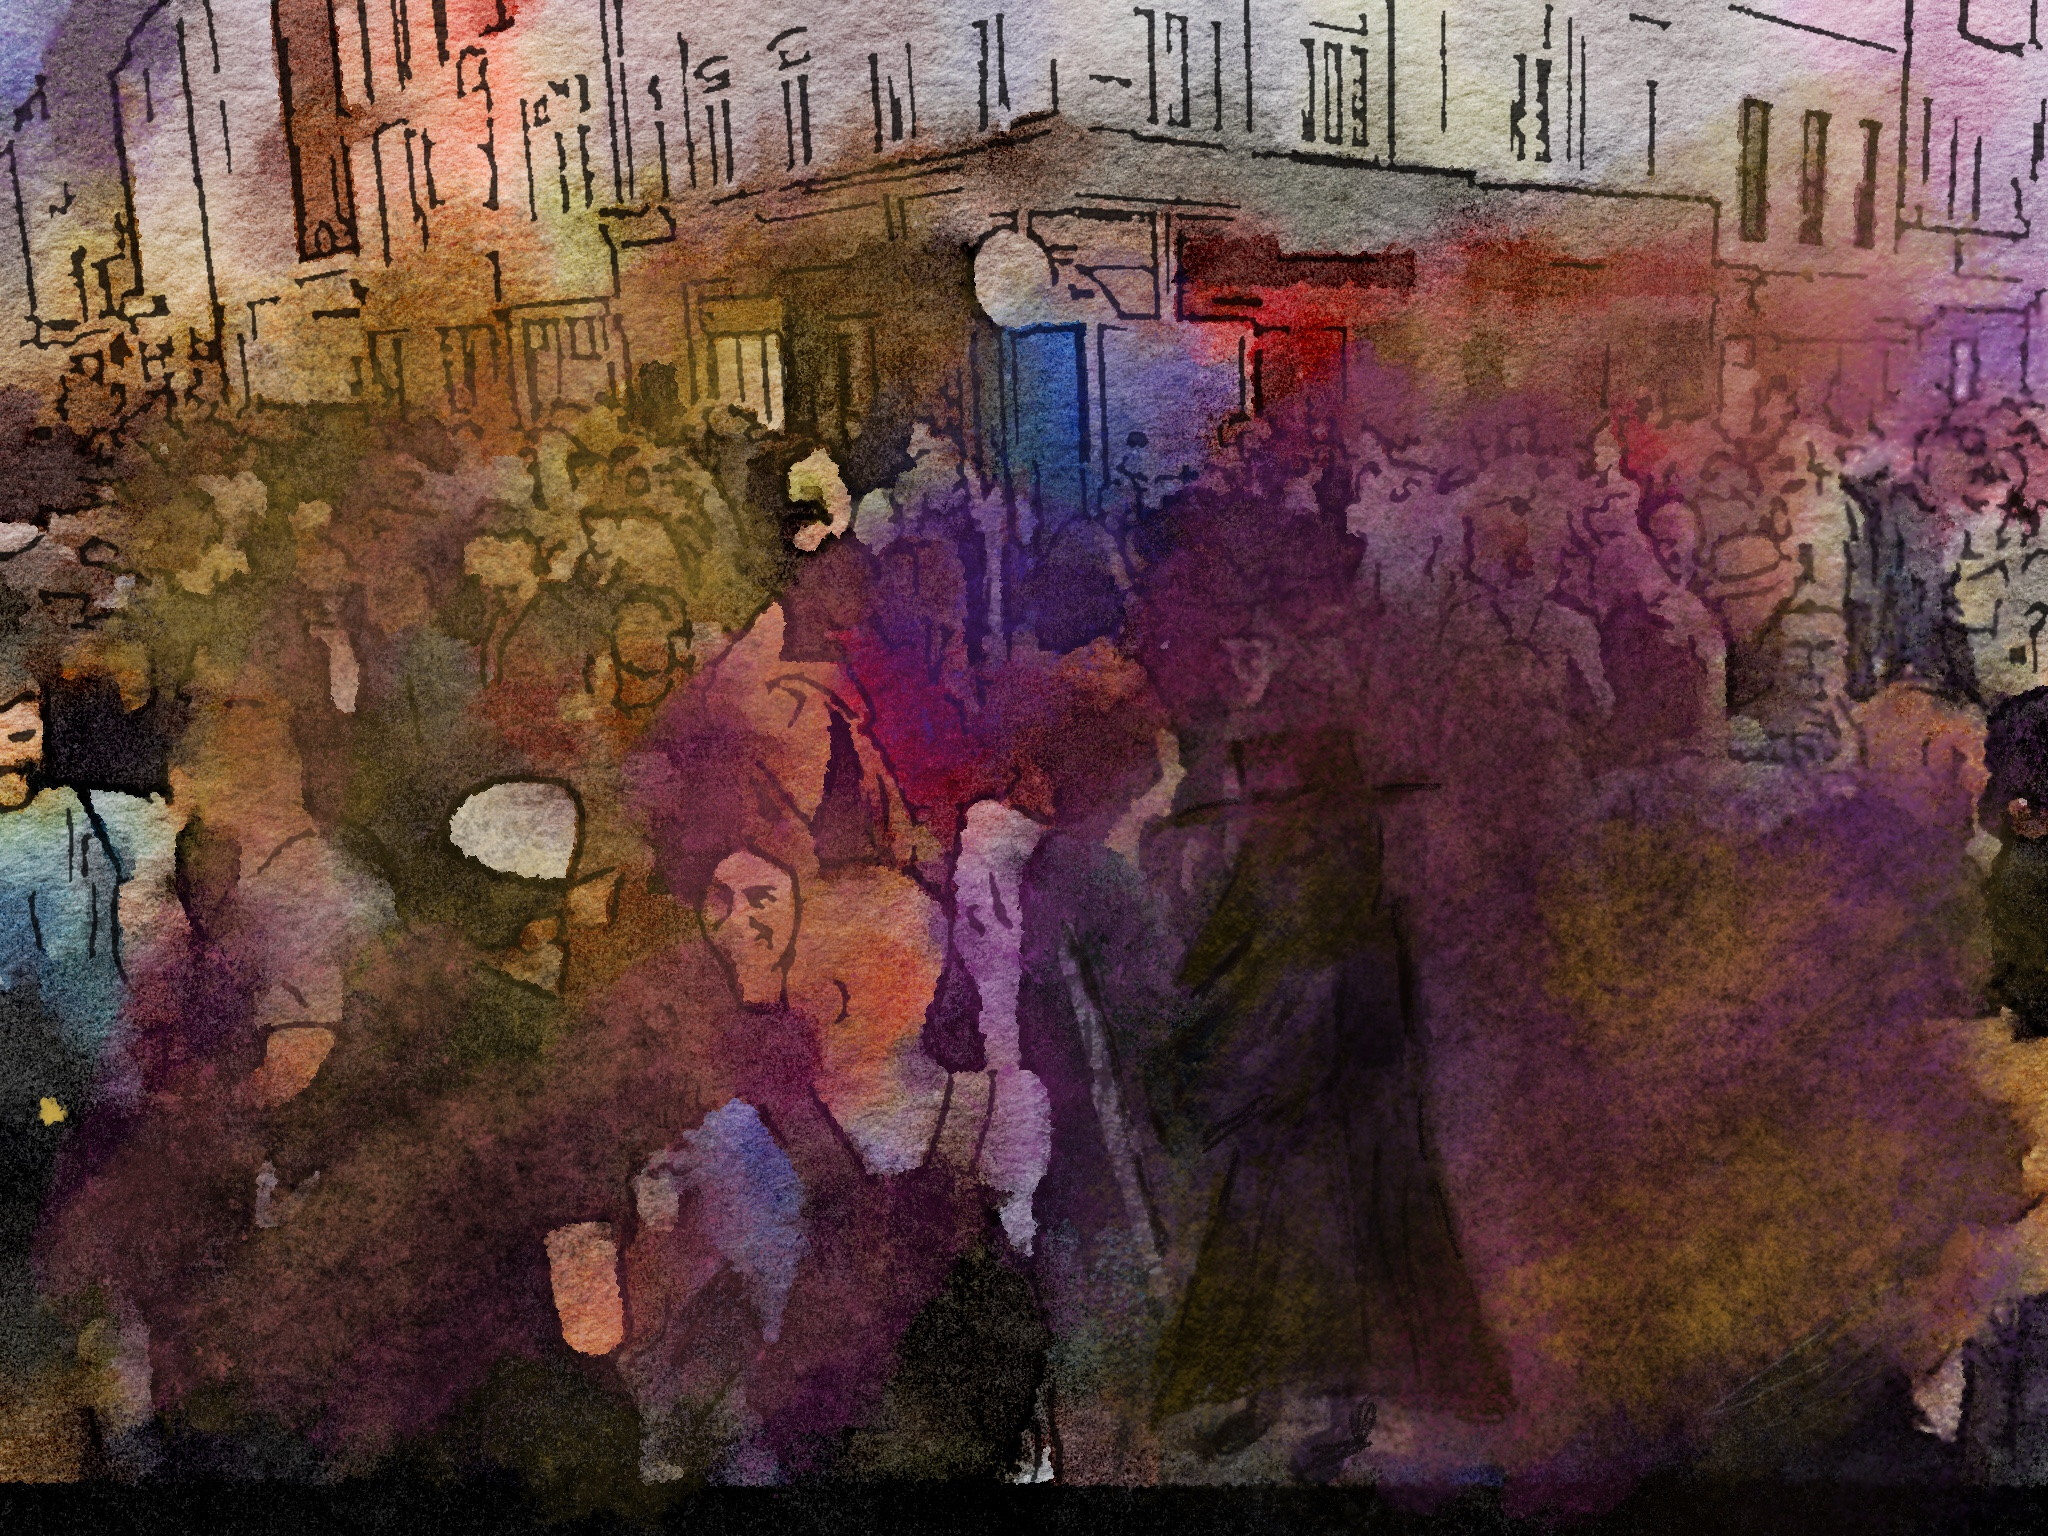 Digital image of a crowded street in Soho with a medieval plague doctor in the foreground.